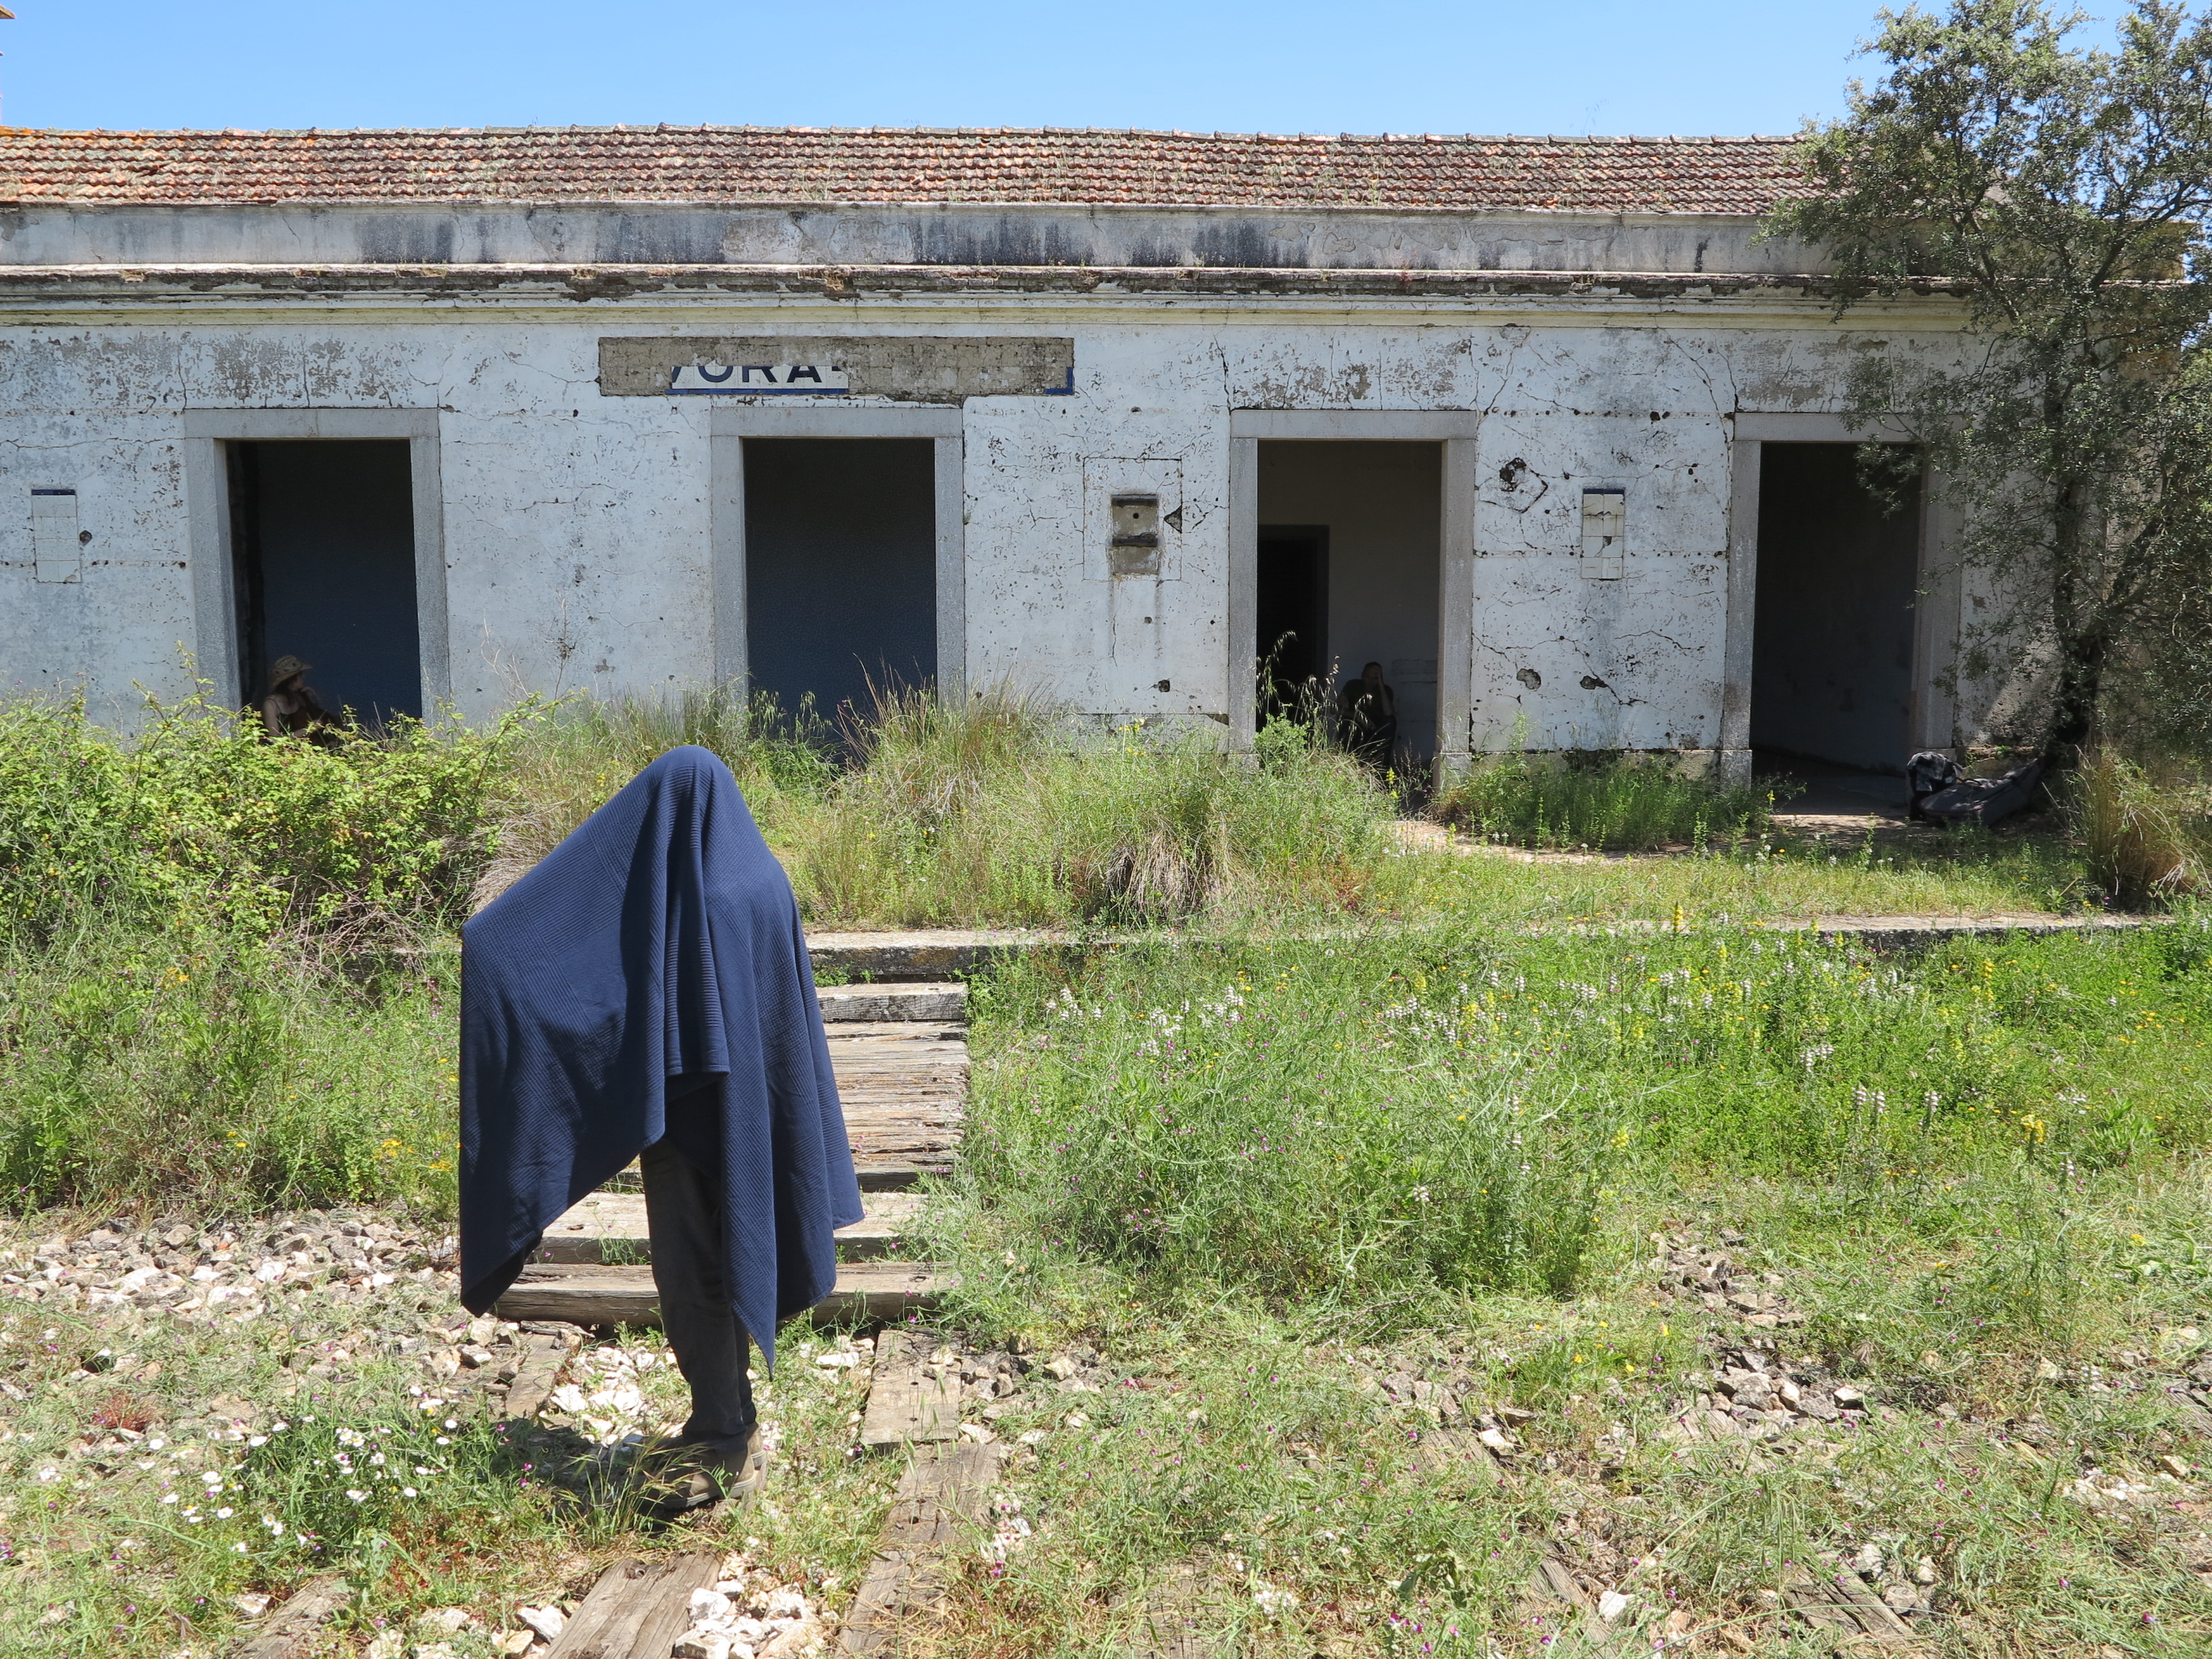 """Living sculpture installation with my one minute film """"Morte do Sol"""", especially made for the project """"Teatro de Passagem"""" by Bart Drost at the abondend railwaystation of Evoramonte, Portugal (2016)"""